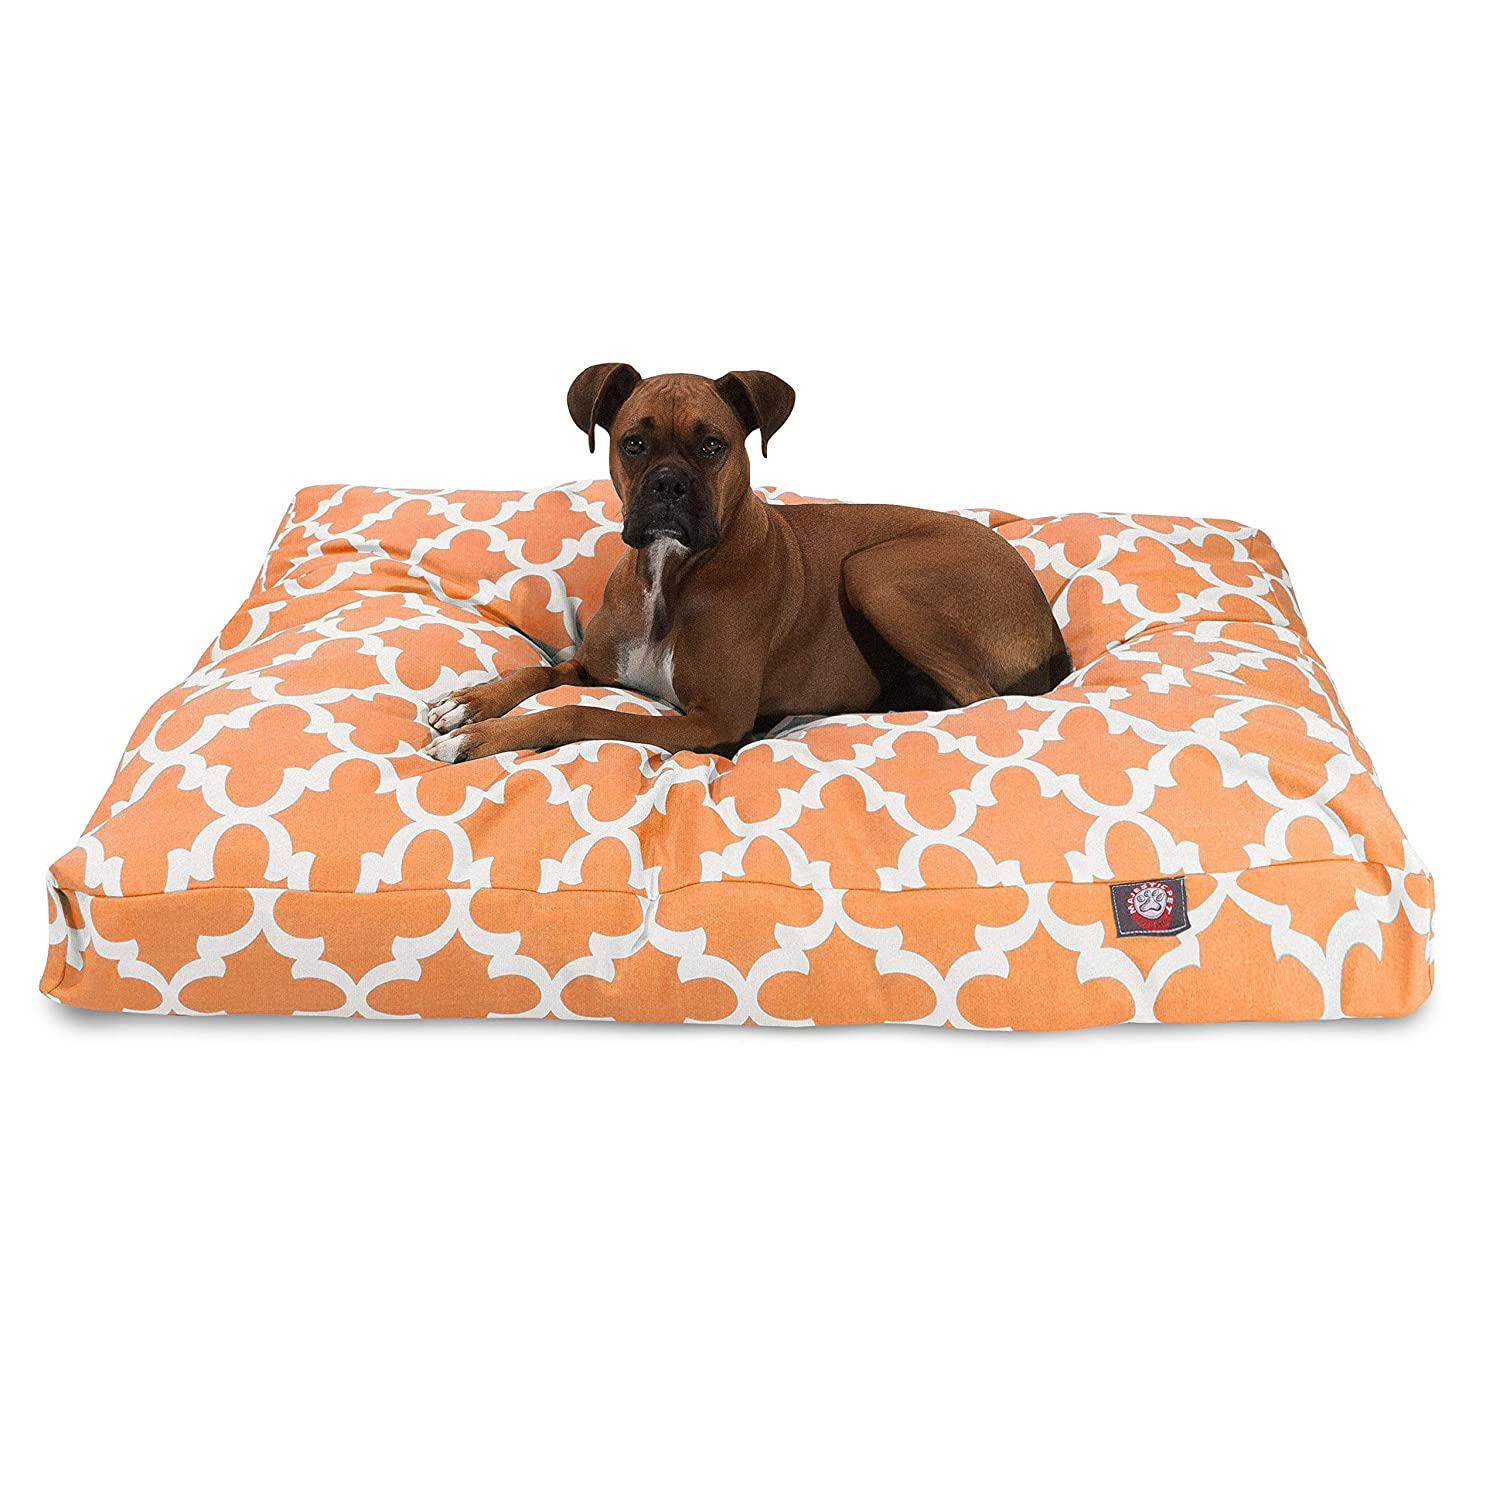 Peach XL Peach XL Majestic Pet Peach Trellis Extra Large Rectangle Indoor Outdoor Pet Dog Bed With Removable Washable Cover Products